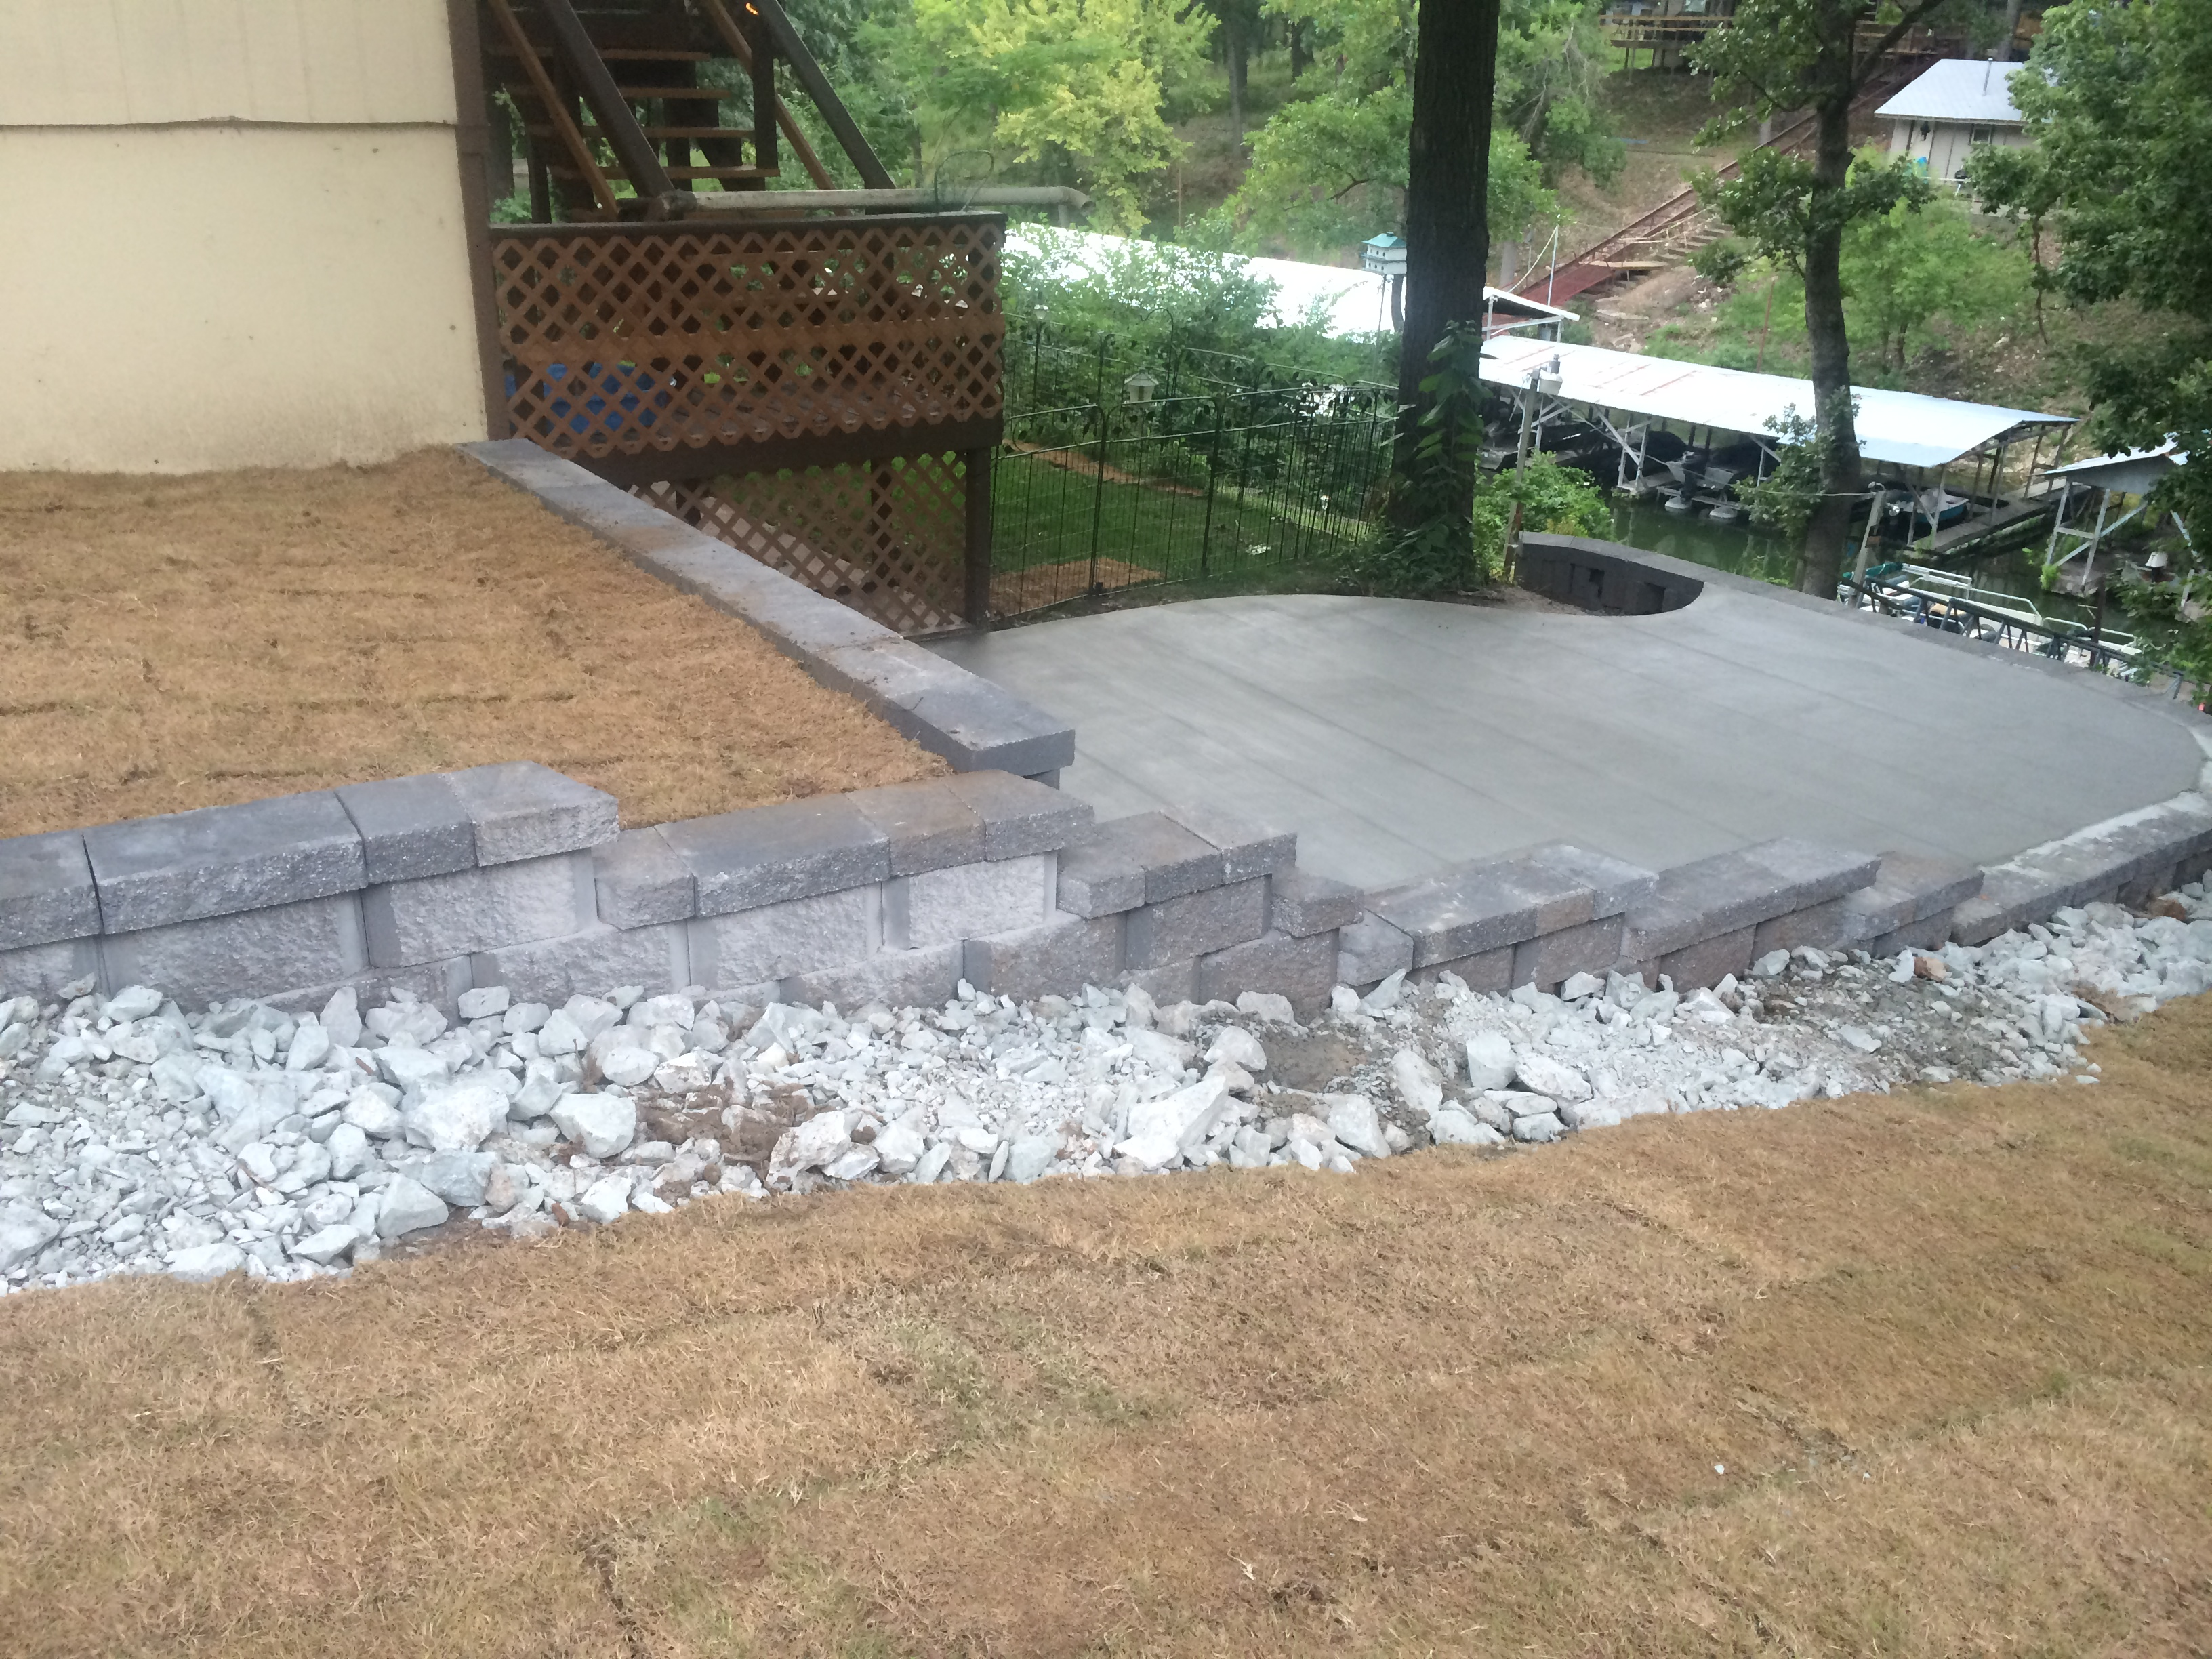 Landscaping Stones Joplin Mo : Professionally built retaining walls by r d lawn care